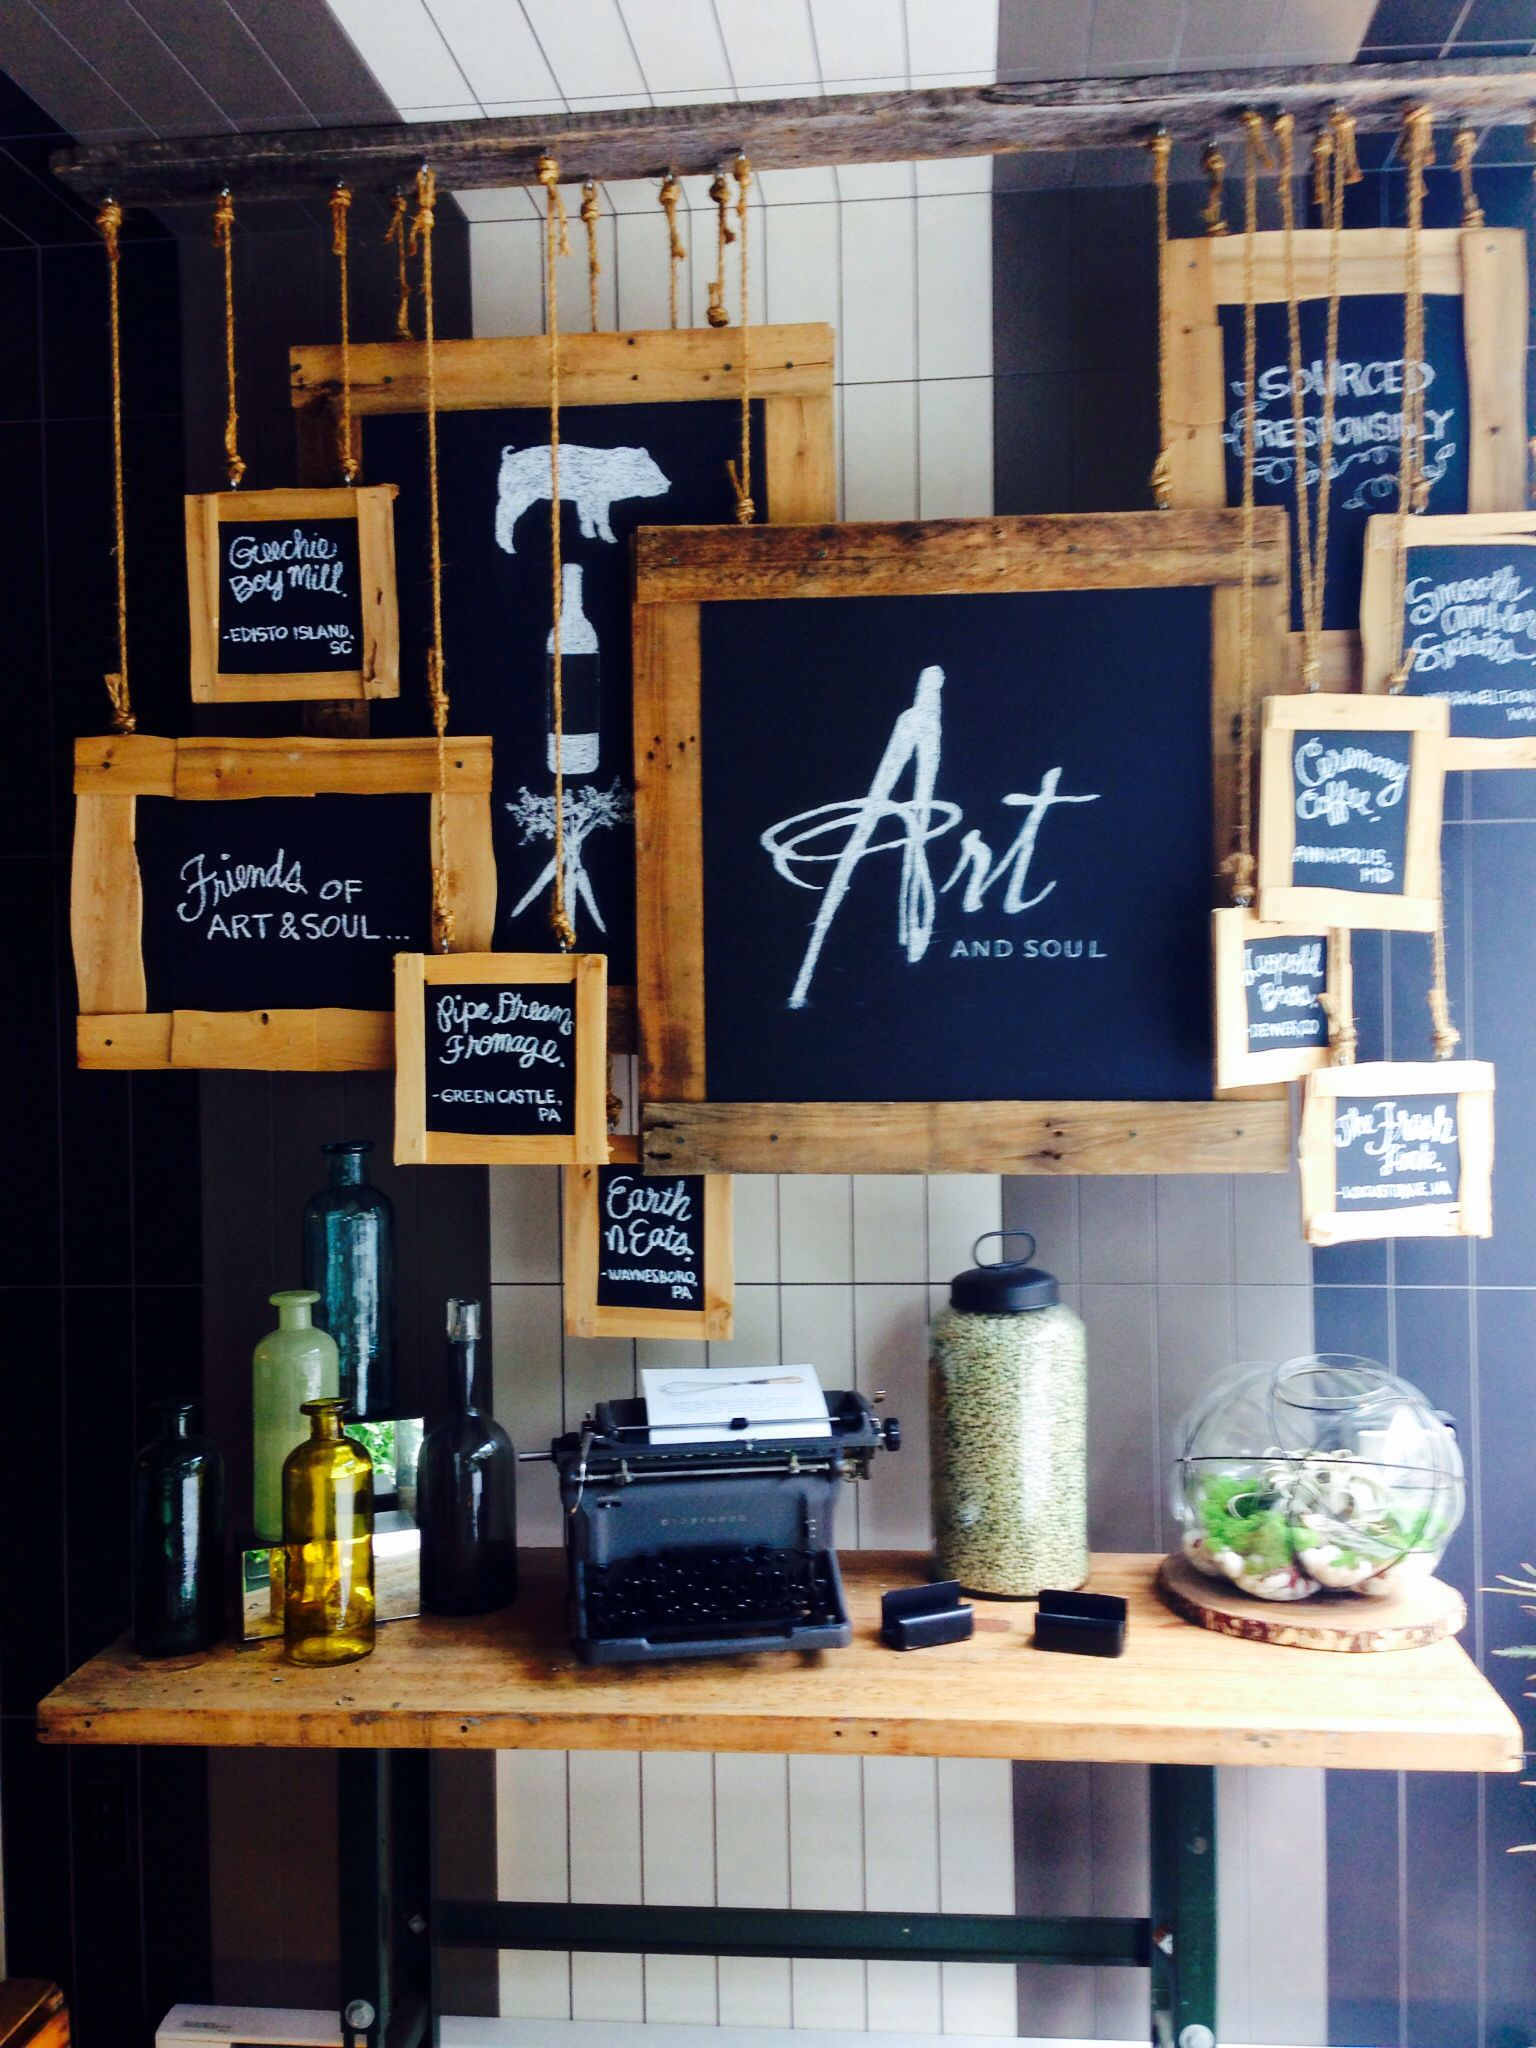 Art soul wall display at restaurant entrance made with